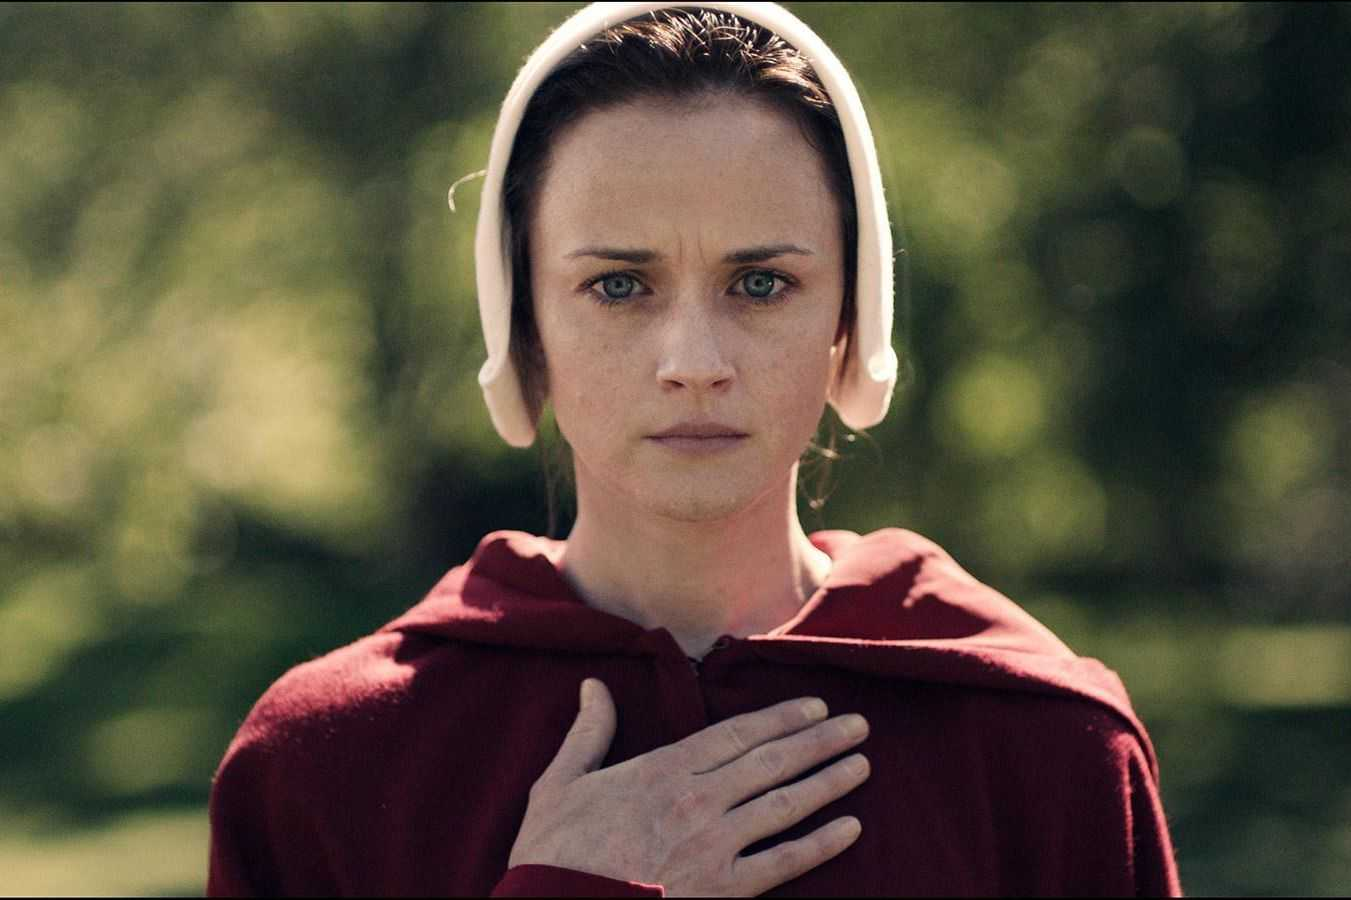 Happy 39th birthday to Alexis Bledel, star of THE HANDMAID\S TALE, SIN CITY, and more!